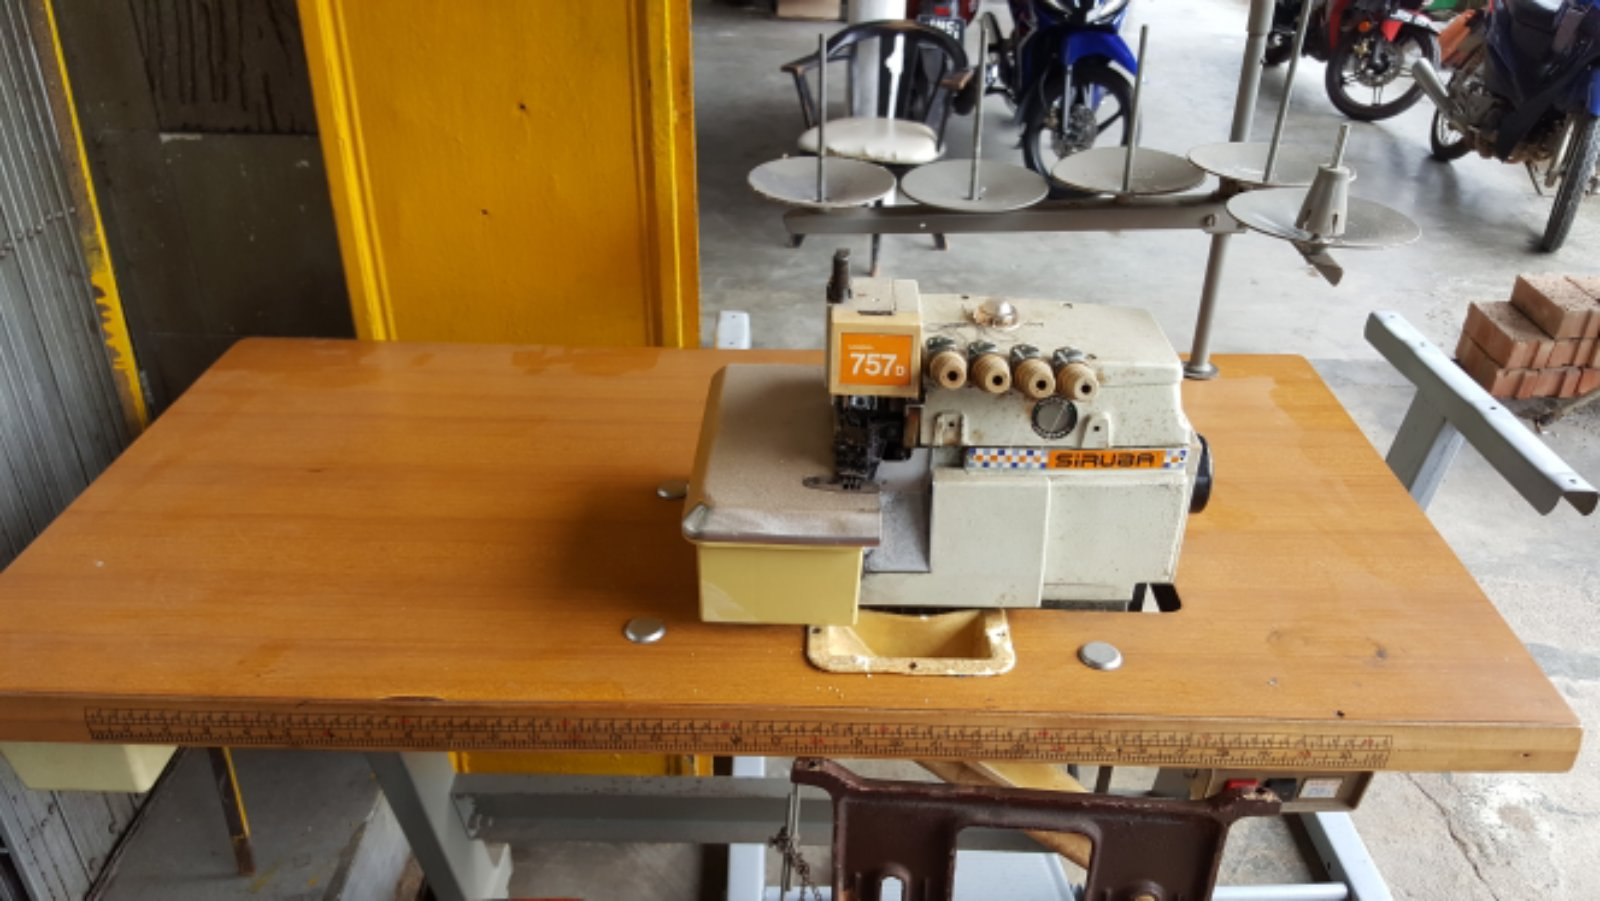 Service Siruba Overlock Sewing Machine!